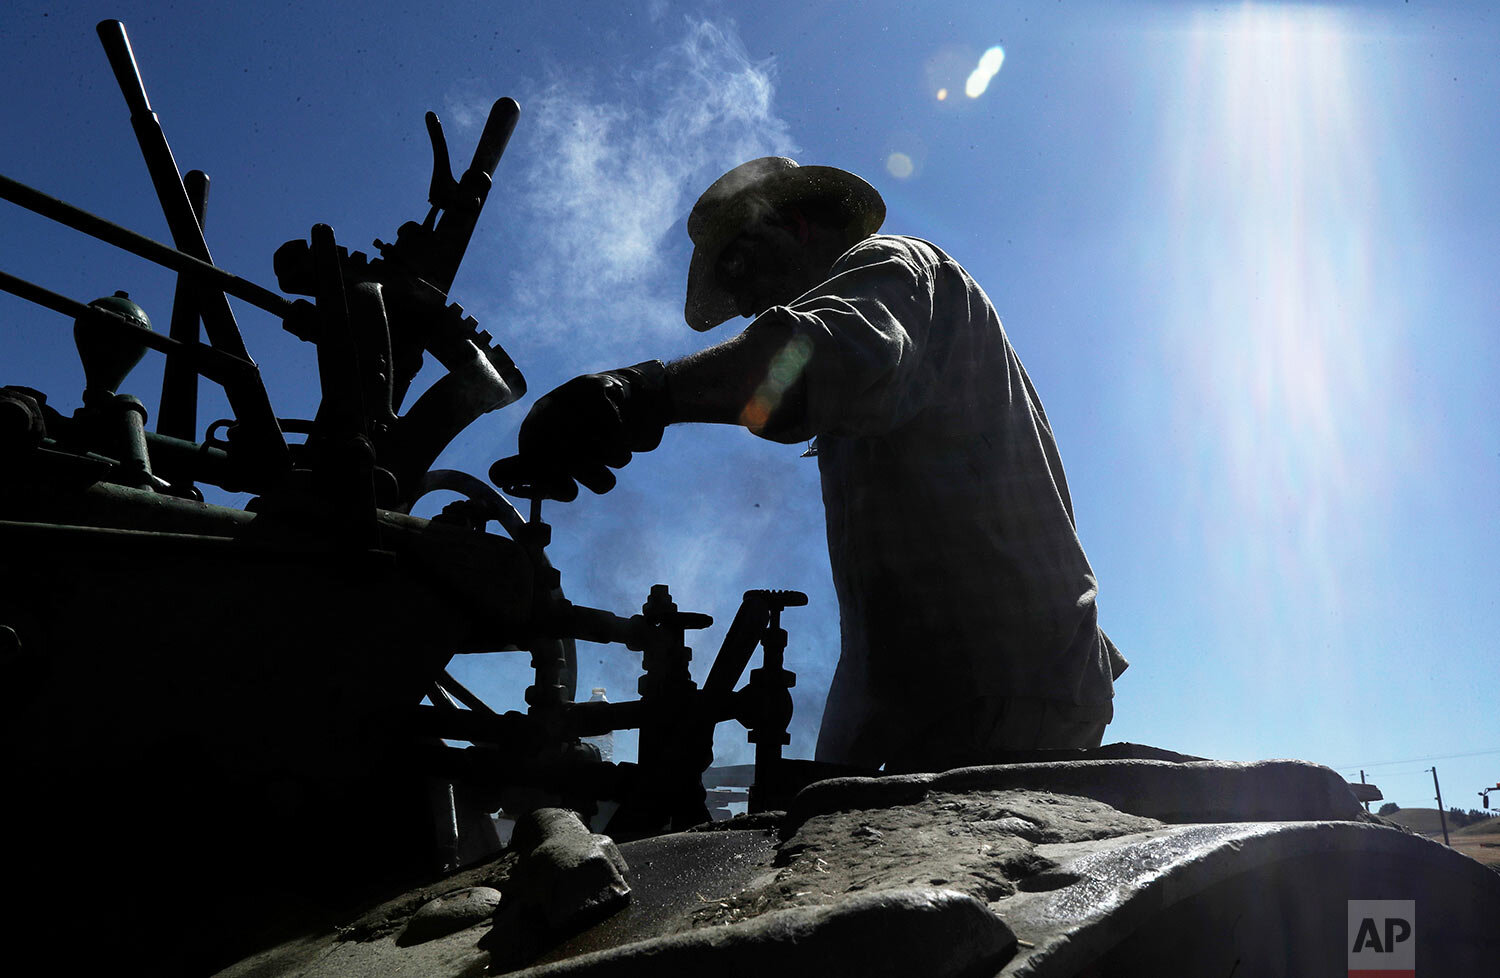 Charles Knaack operates a 100-year-old Case steam traction engine being used to drive a stationary grain thresher near Colfax, Wash., Sept. 2, 2019. (AP Photo/Ted S. Warren)